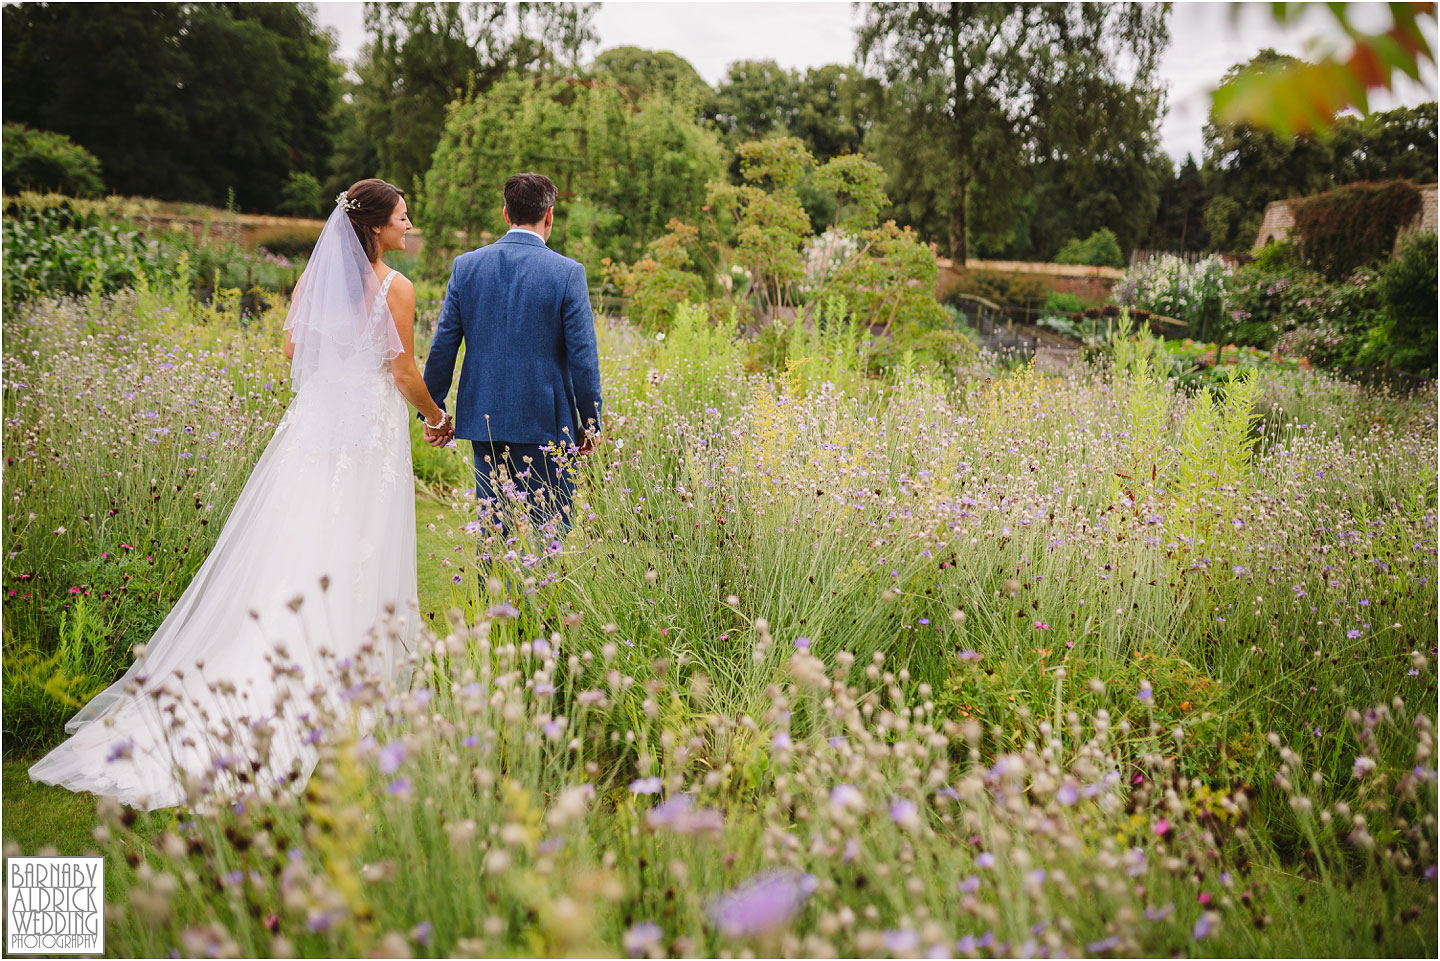 Wedding portraits at the Fig House Walled Garden at Middleton Lodge, Fig House Walled Garden Middleton Lodge Wedding Photos, Fig House Middleton Lodge Richmond, Middleton Lodge wedding photographer, Middleton Lodge Wedding Photography, Yorkshire Wedding Photographer Barnaby Aldrick